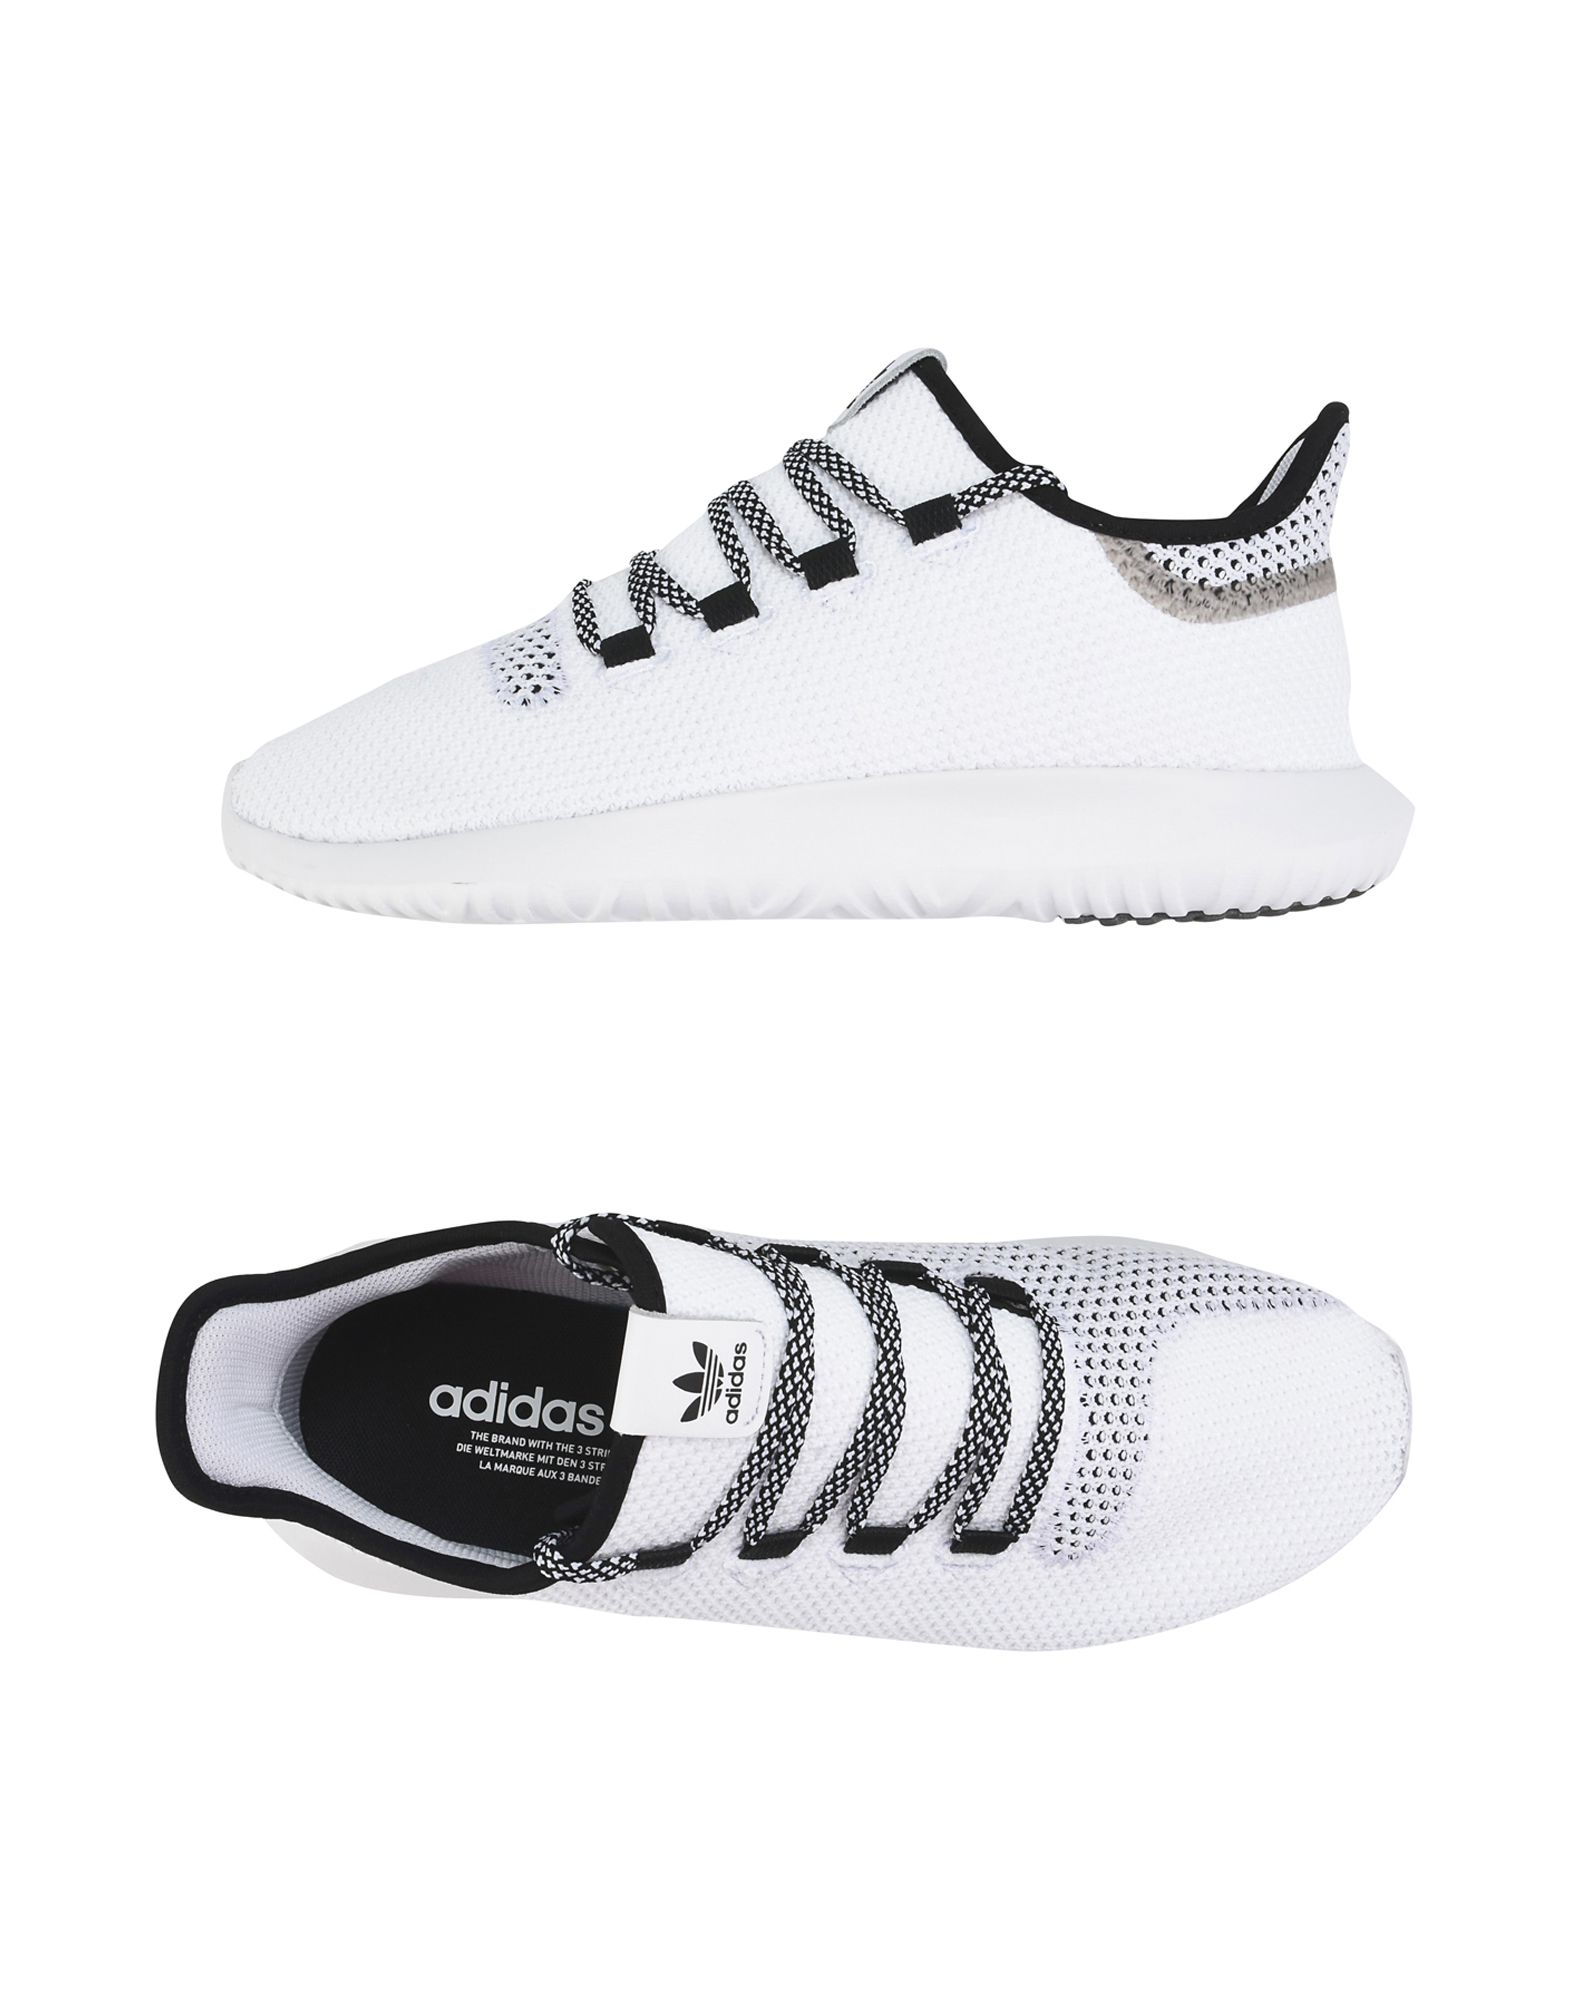 Baskets Adidas Originals Originals Originals Tubular Shadow Ck - Homme - Baskets Adidas Originals  Blanc Mode pas cher et belle ca4d5d